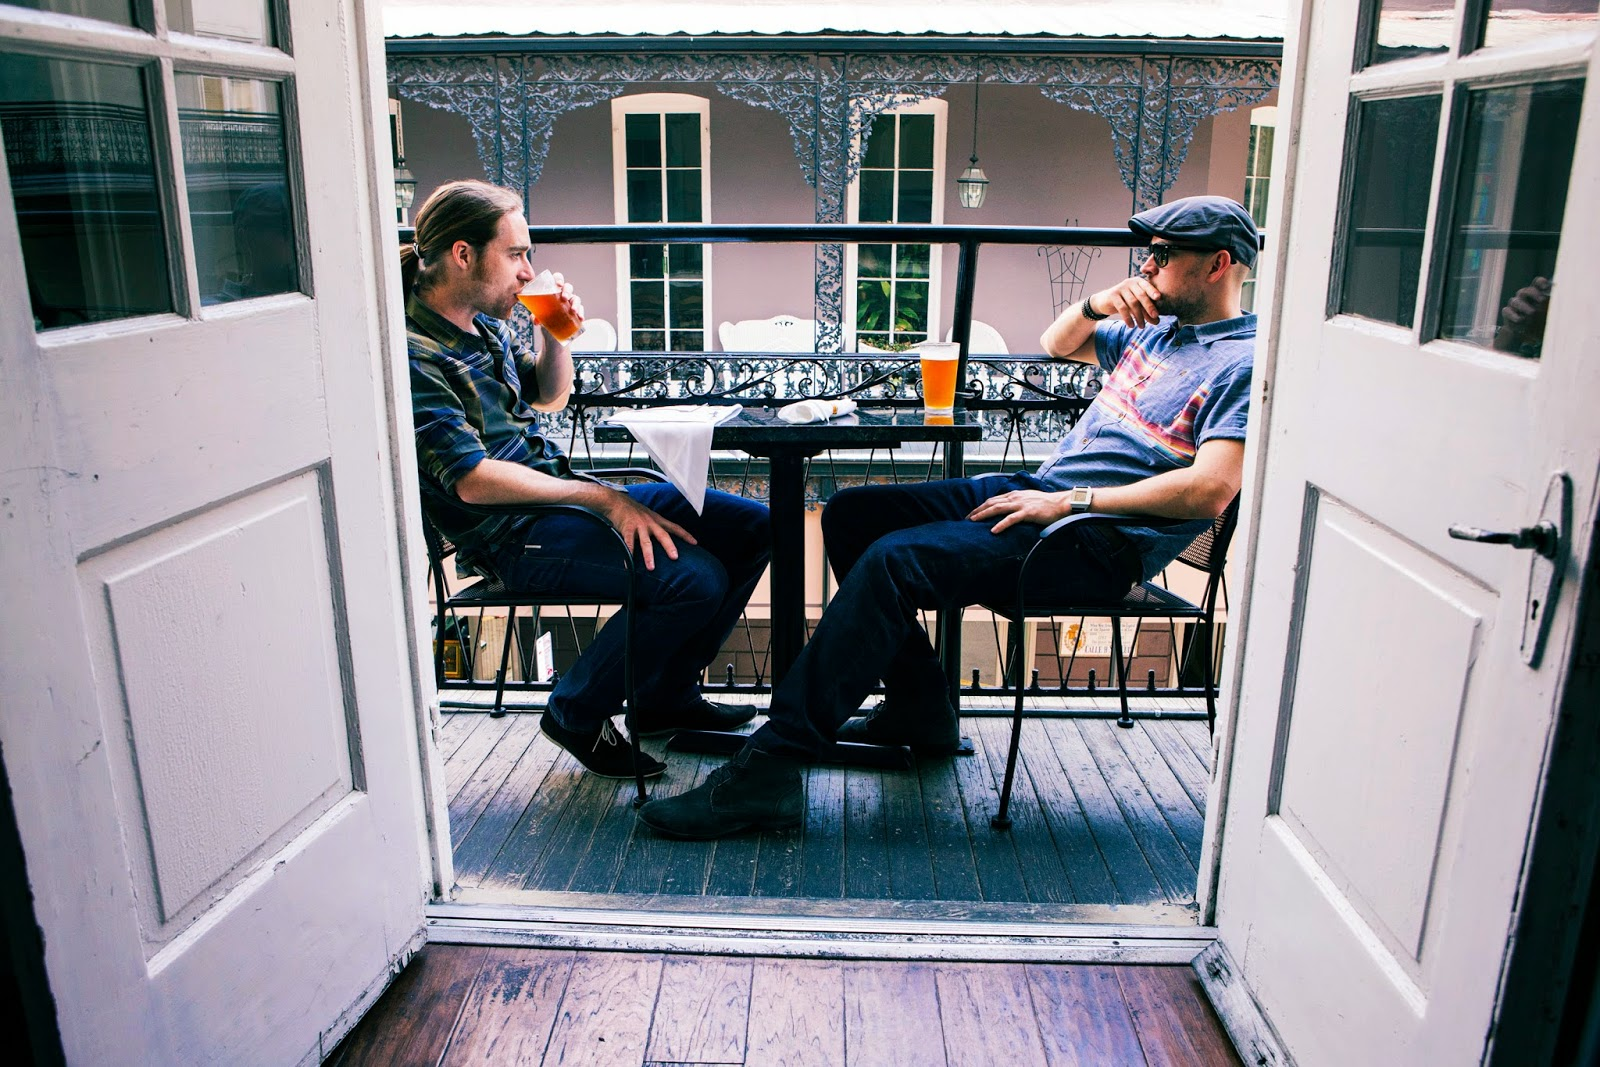 Martin Dickie (left) and James Watt (right) on a balcony in New Orleans, Louisiana